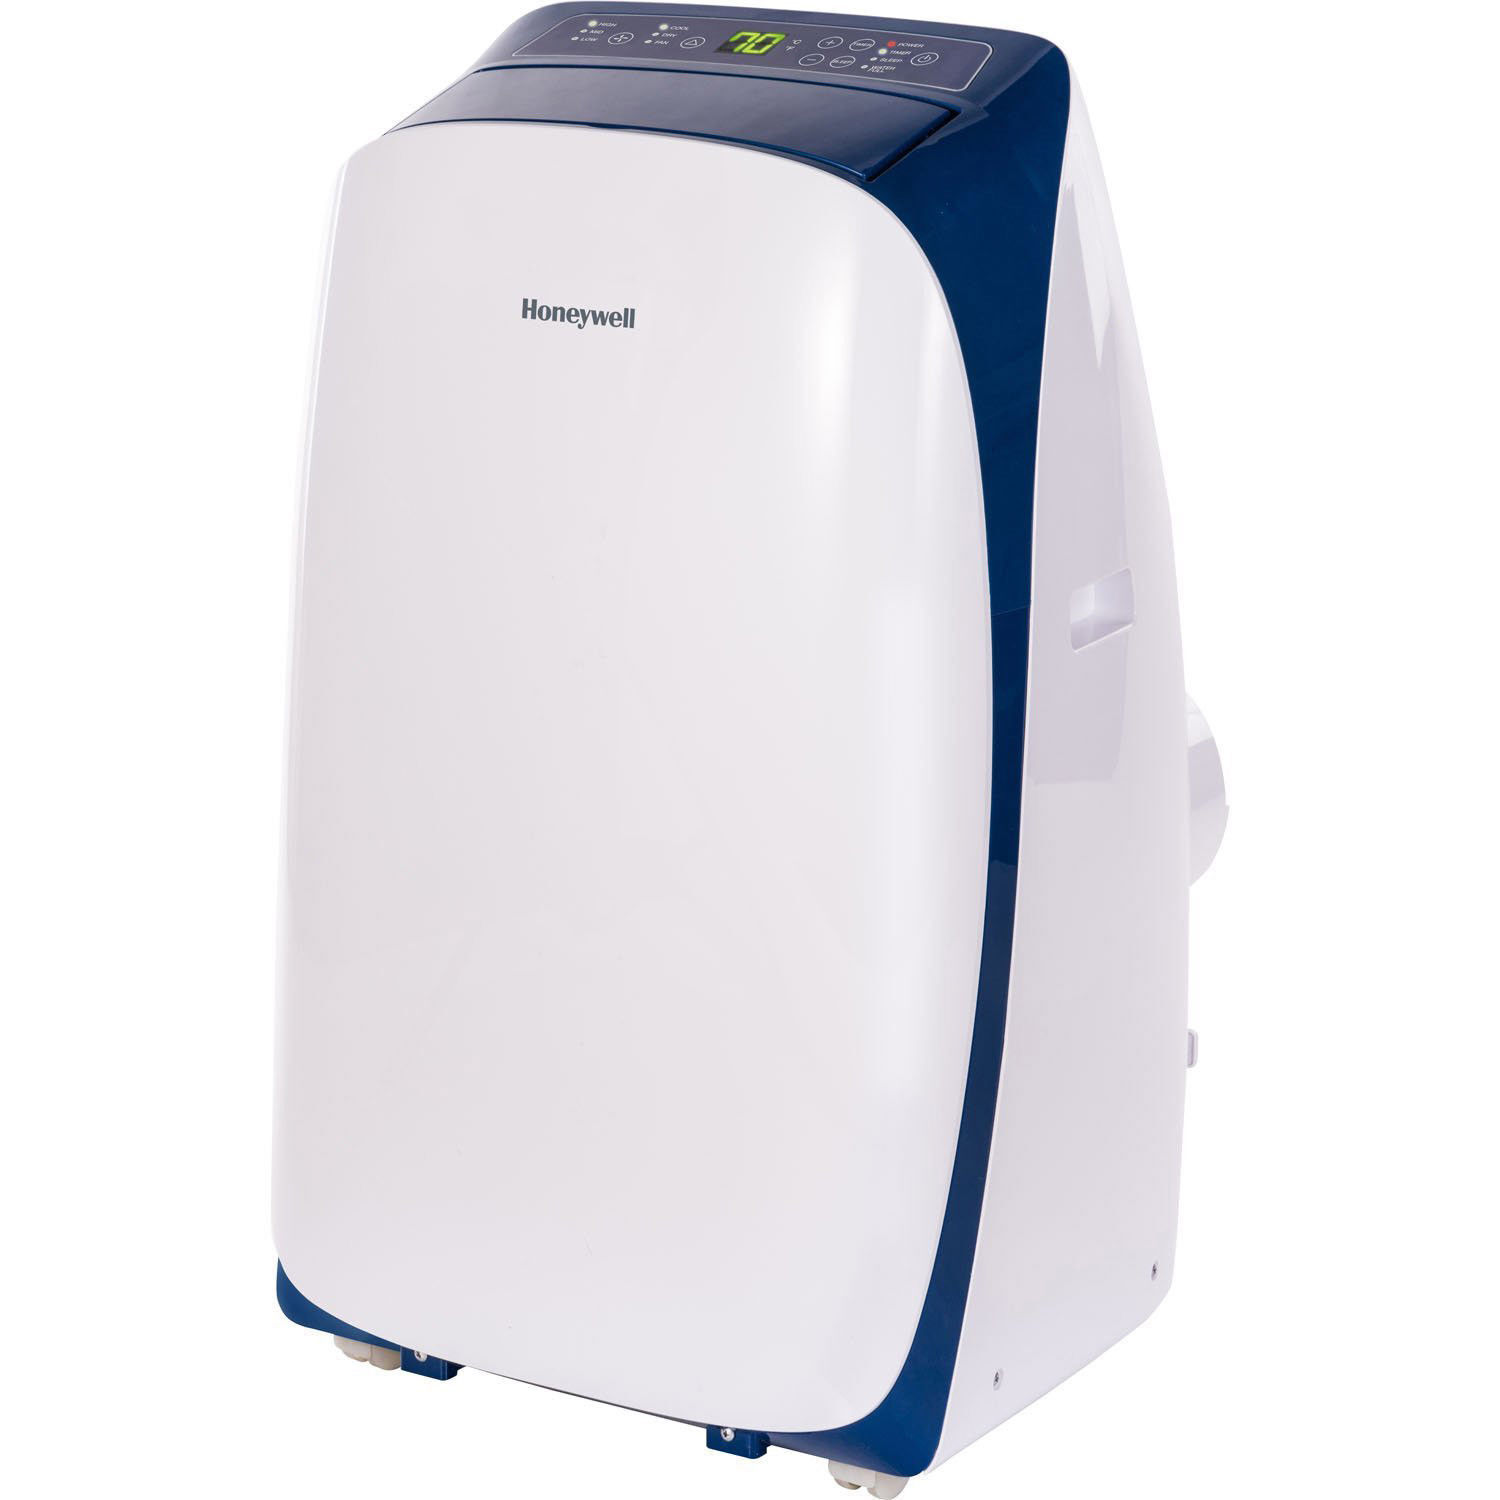 New Honeywell 12,000 BTU Portable Air Conditioner Open Box H